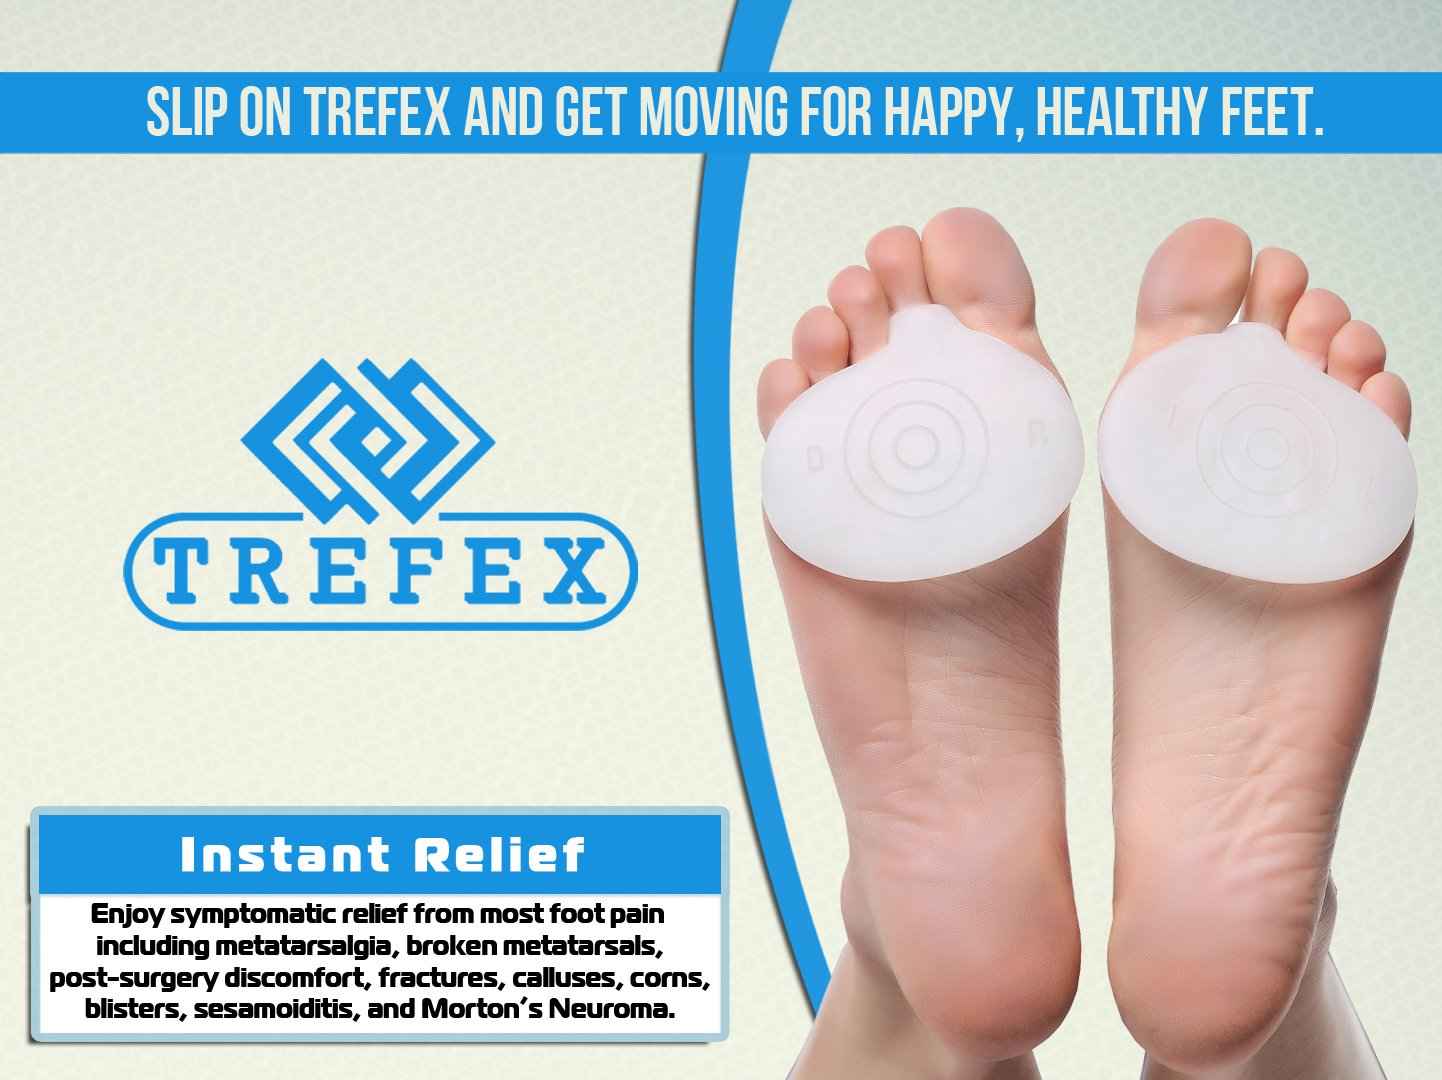 TREFEX™ Flex Fit Metatarsal Gel Pad Insole for Pain Relief on the Ball of  the Foot in Athletes and Suffers of Symptomatic Foot Pain - 2 Pieces